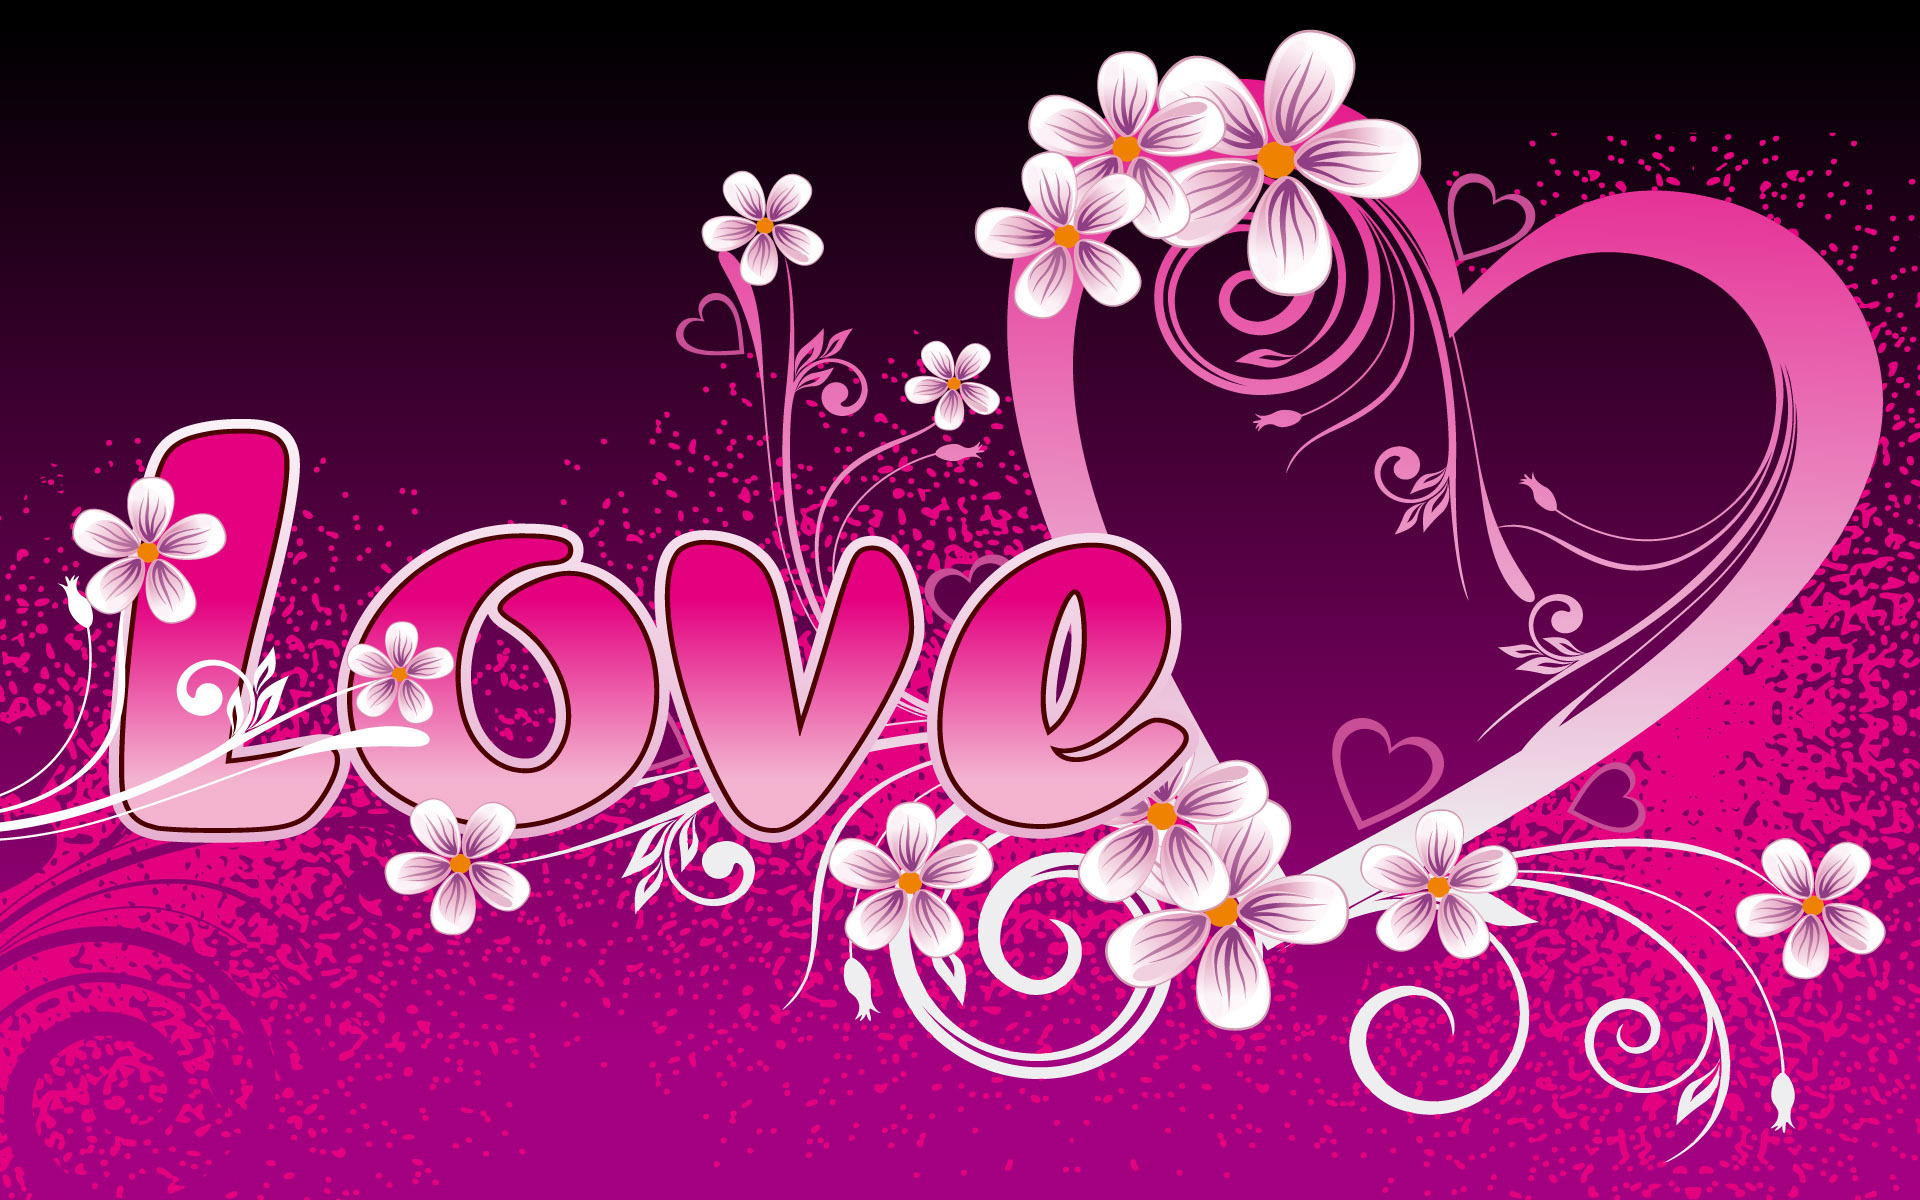 Love Wallpapers HD 2015 Love 11655 Wallpaper Download HD Wallpaper 1920x1200